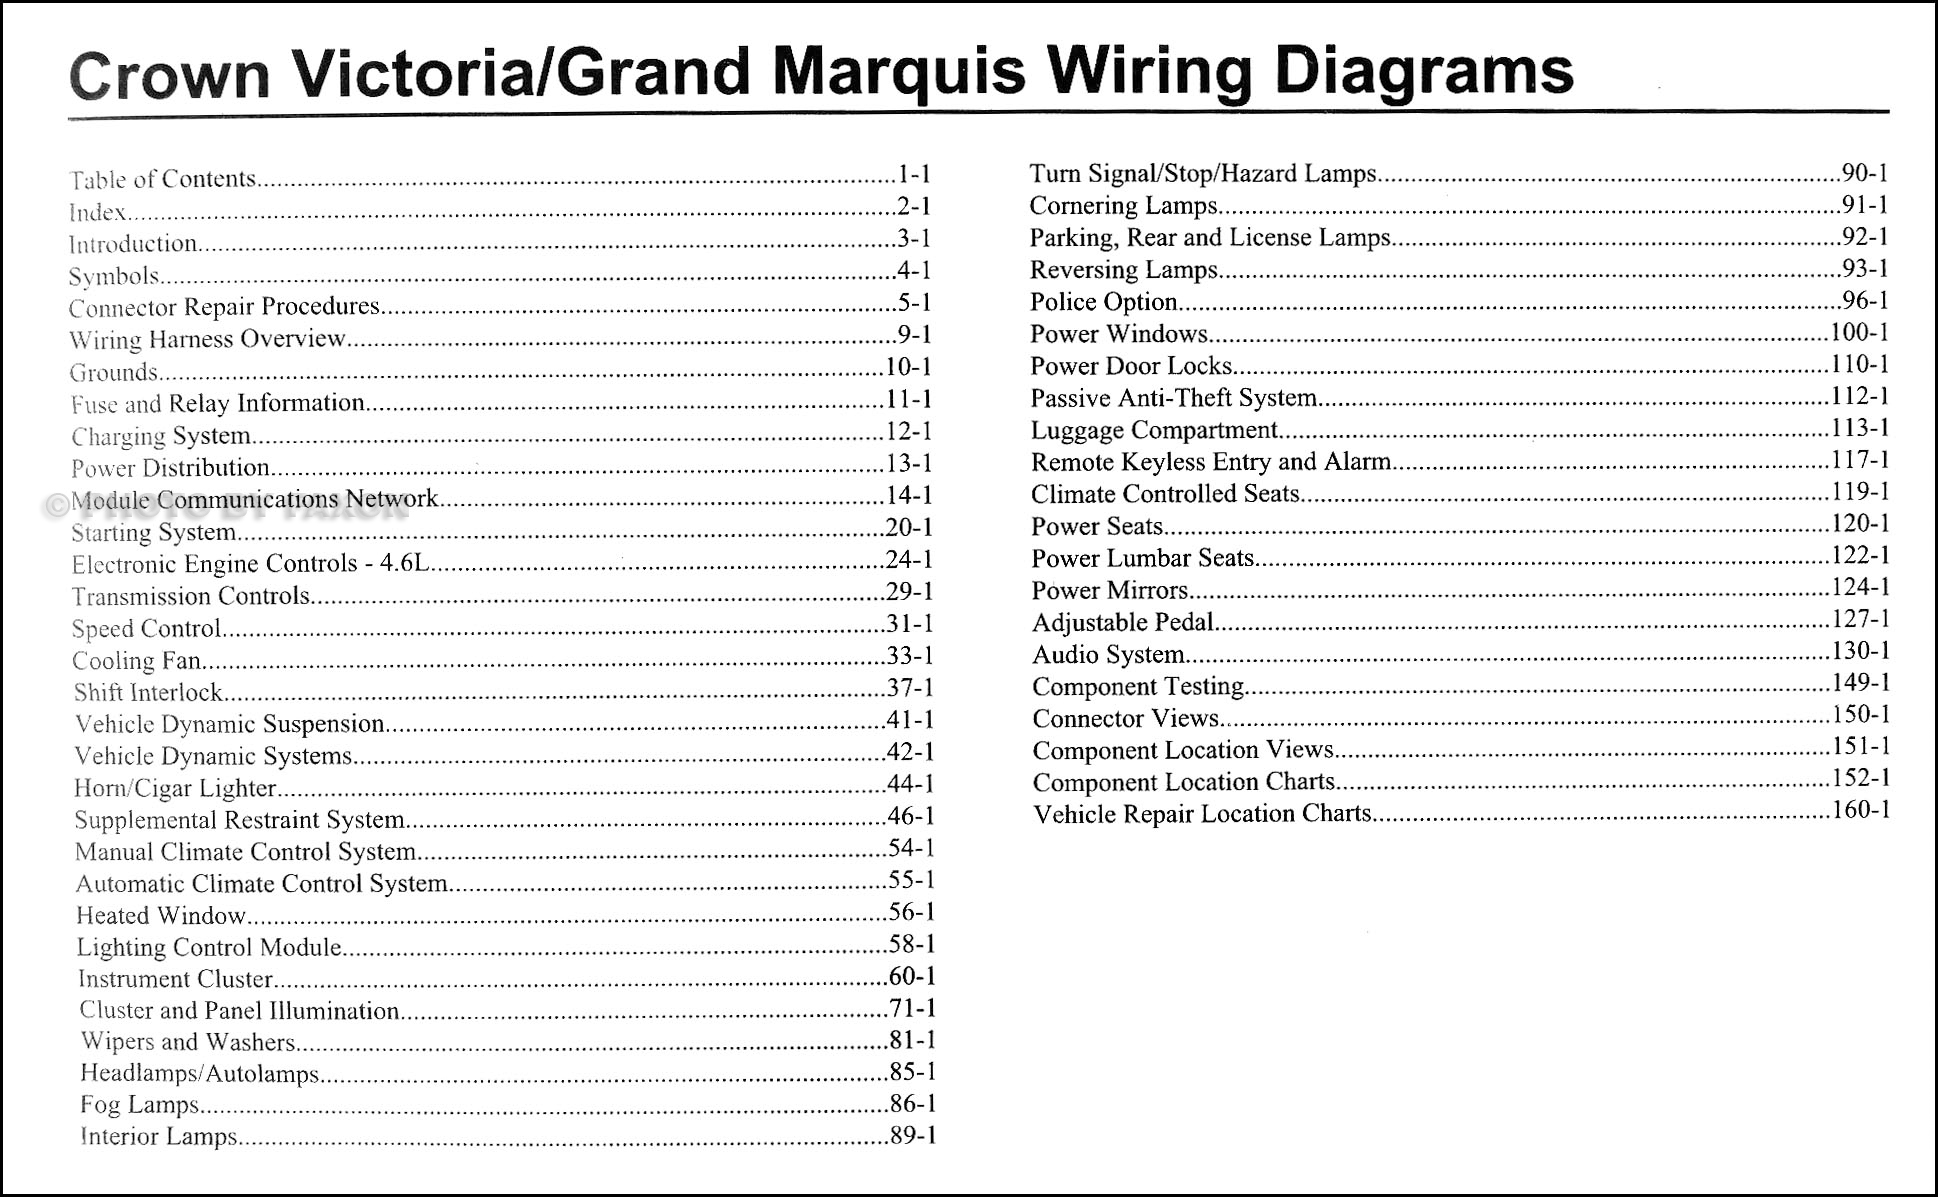 2009 crown victoria \u0026 grand marquis original wiring diagram manual 2003 Mercury Grand Marquis Wiring Diagrams